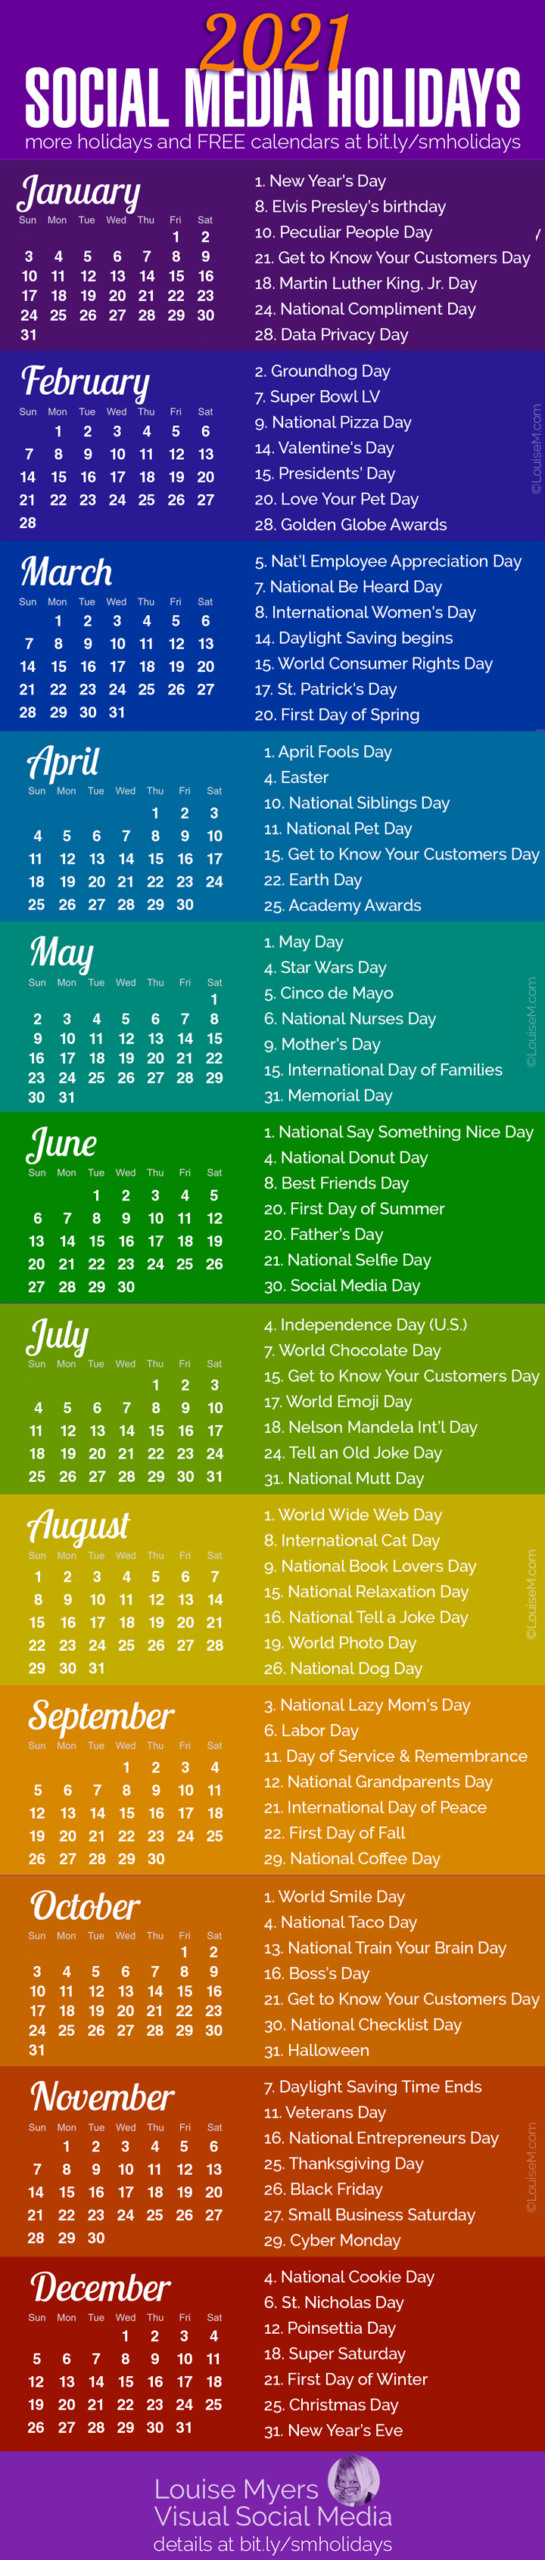 100+ Social Media Holidays You Need In 2020-21: Indispensable!